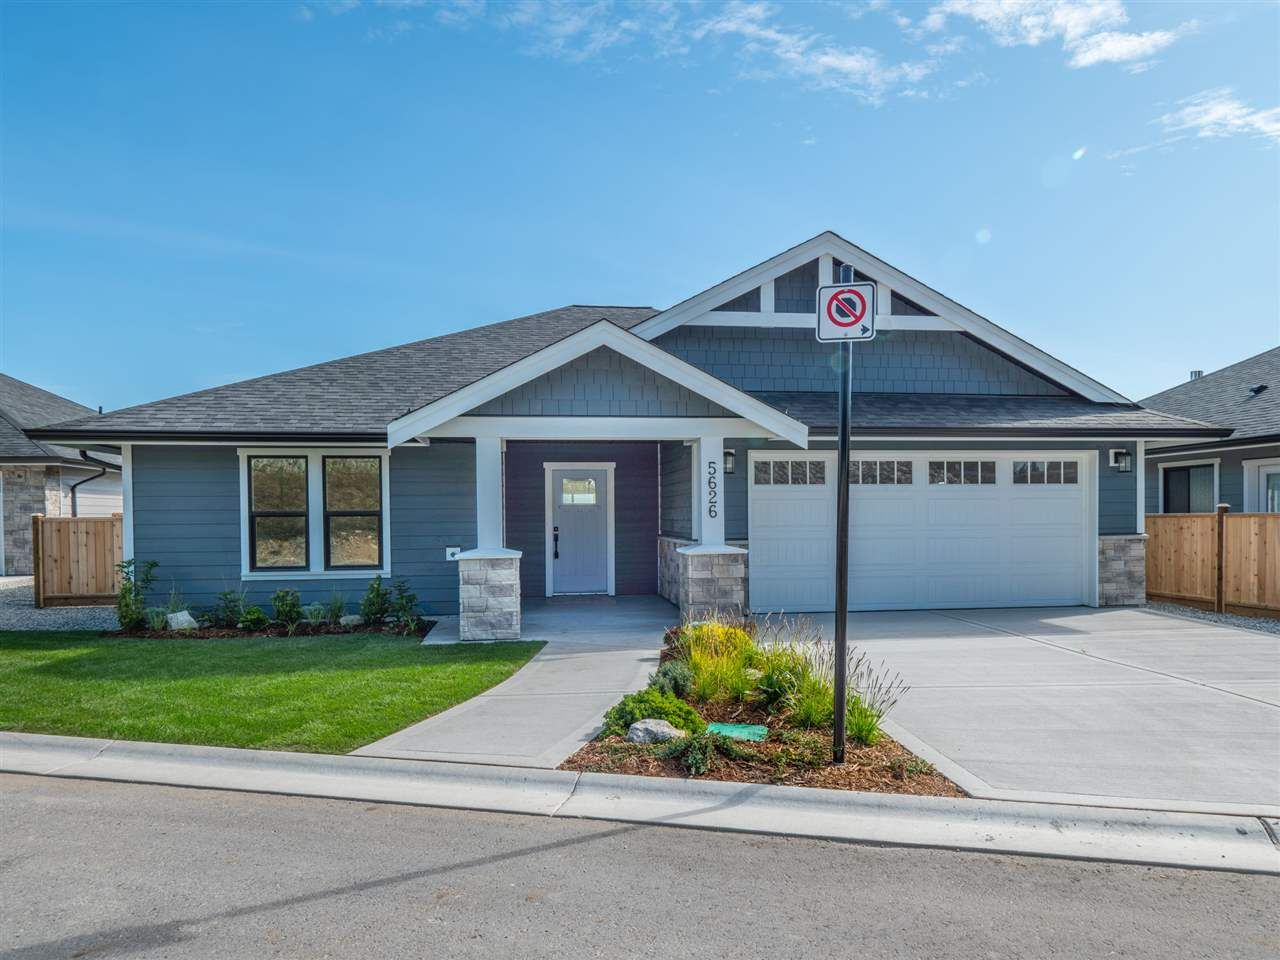 """Main Photo: 5634 KINGBIRD Crescent in Sechelt: Sechelt District House for sale in """"SilverStone Heights Phase2"""" (Sunshine Coast)  : MLS®# R2466073"""